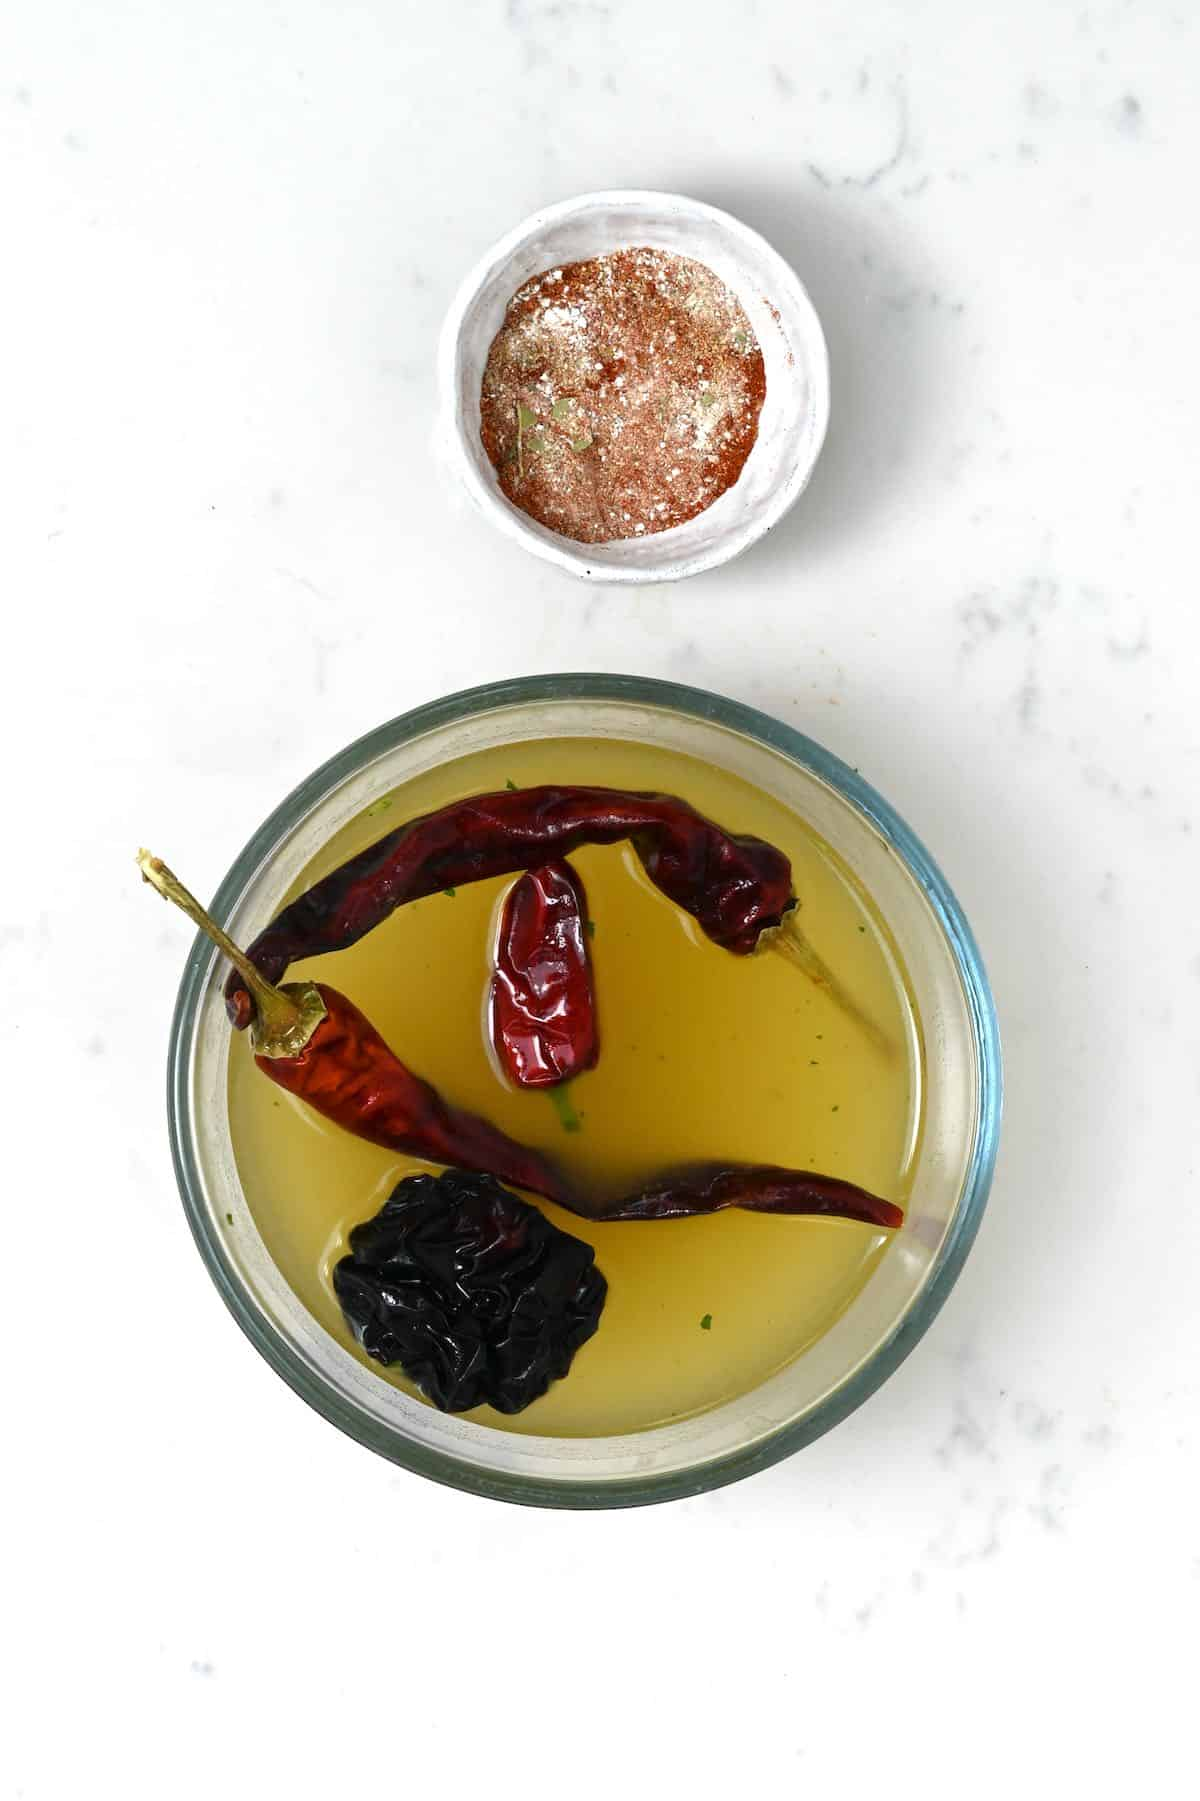 Mixed spices and rehydrated chilies